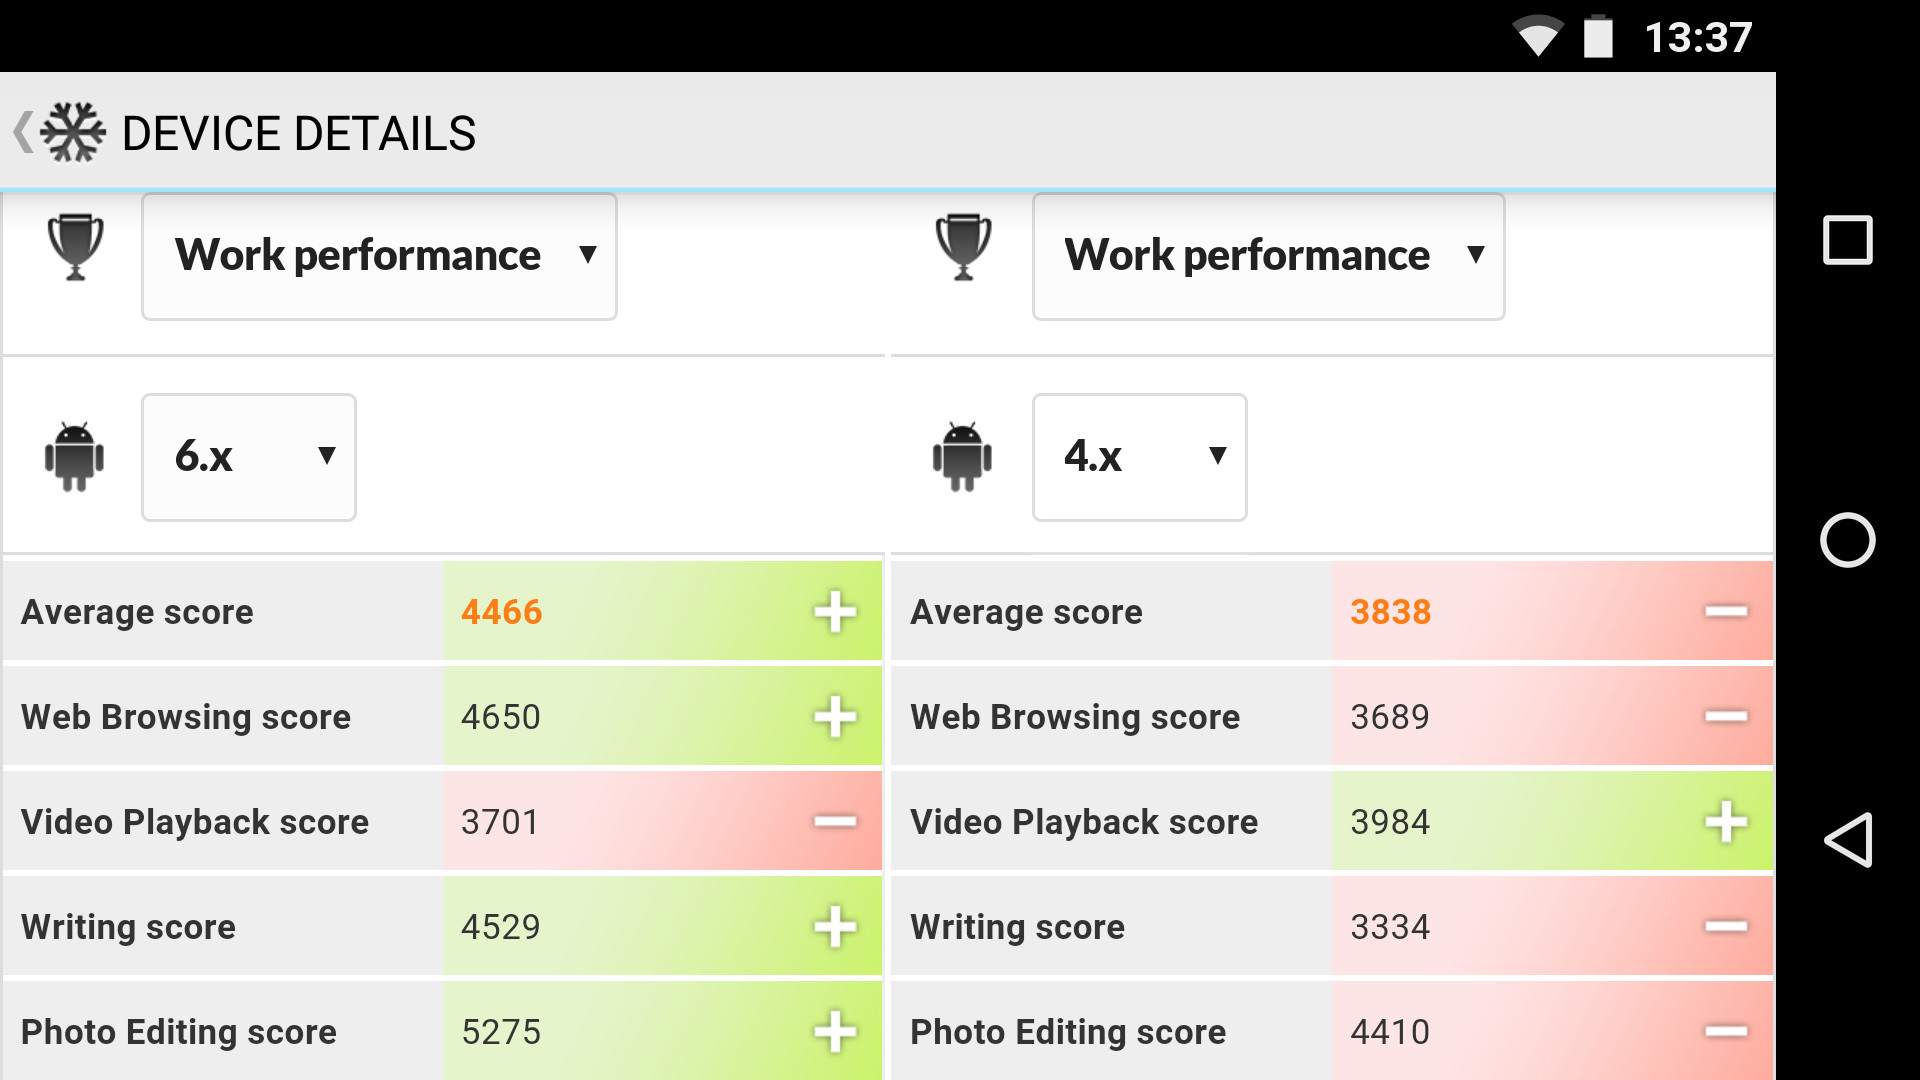 PCMark for Android comparing smartphone performane across Android OS versions